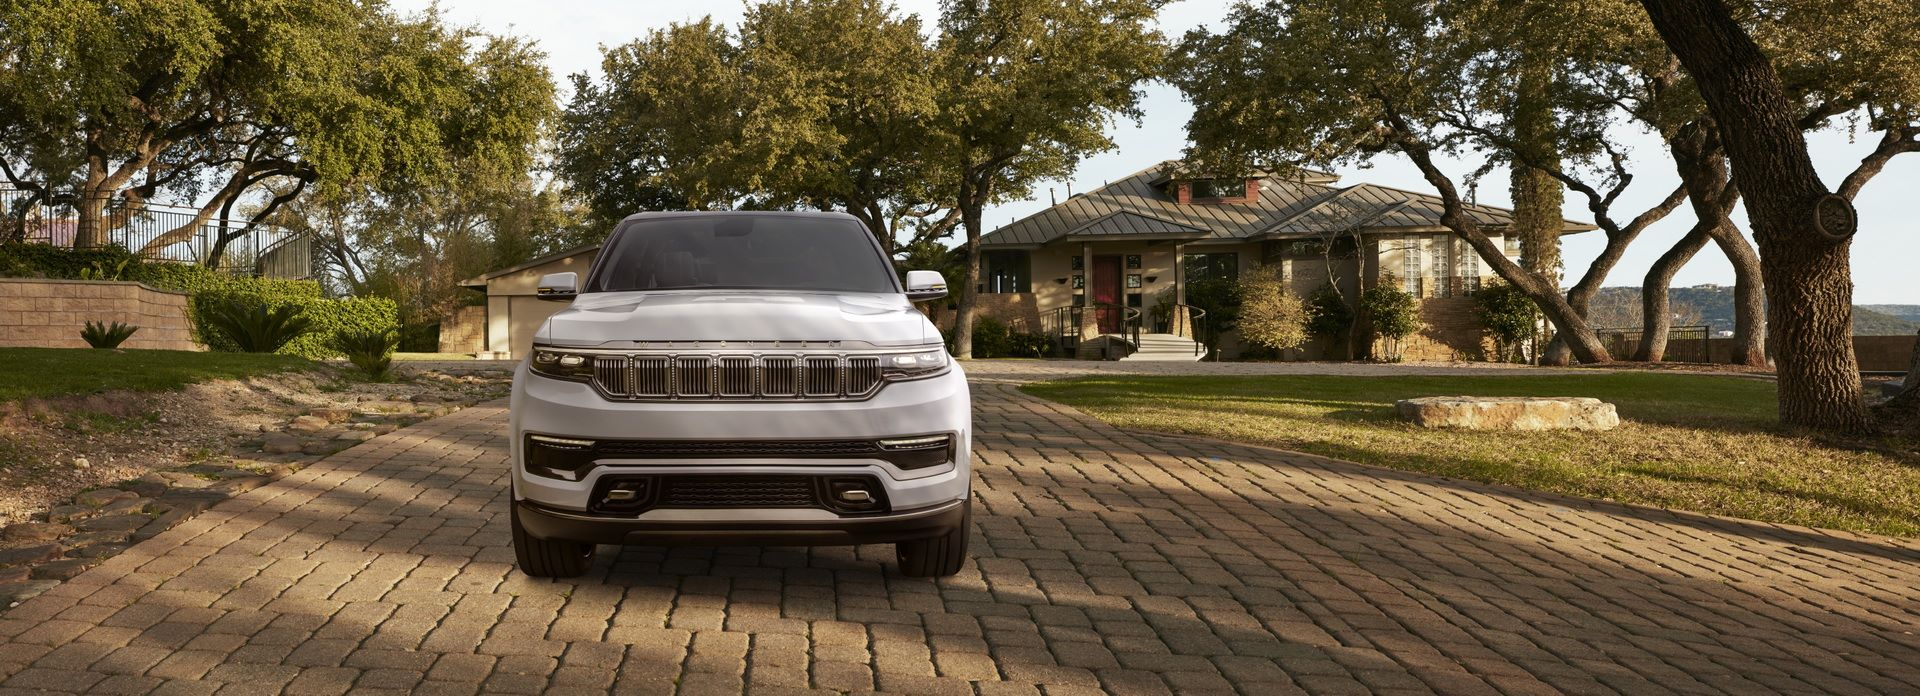 Jeep-Grand-Wagoneer-Concept-10